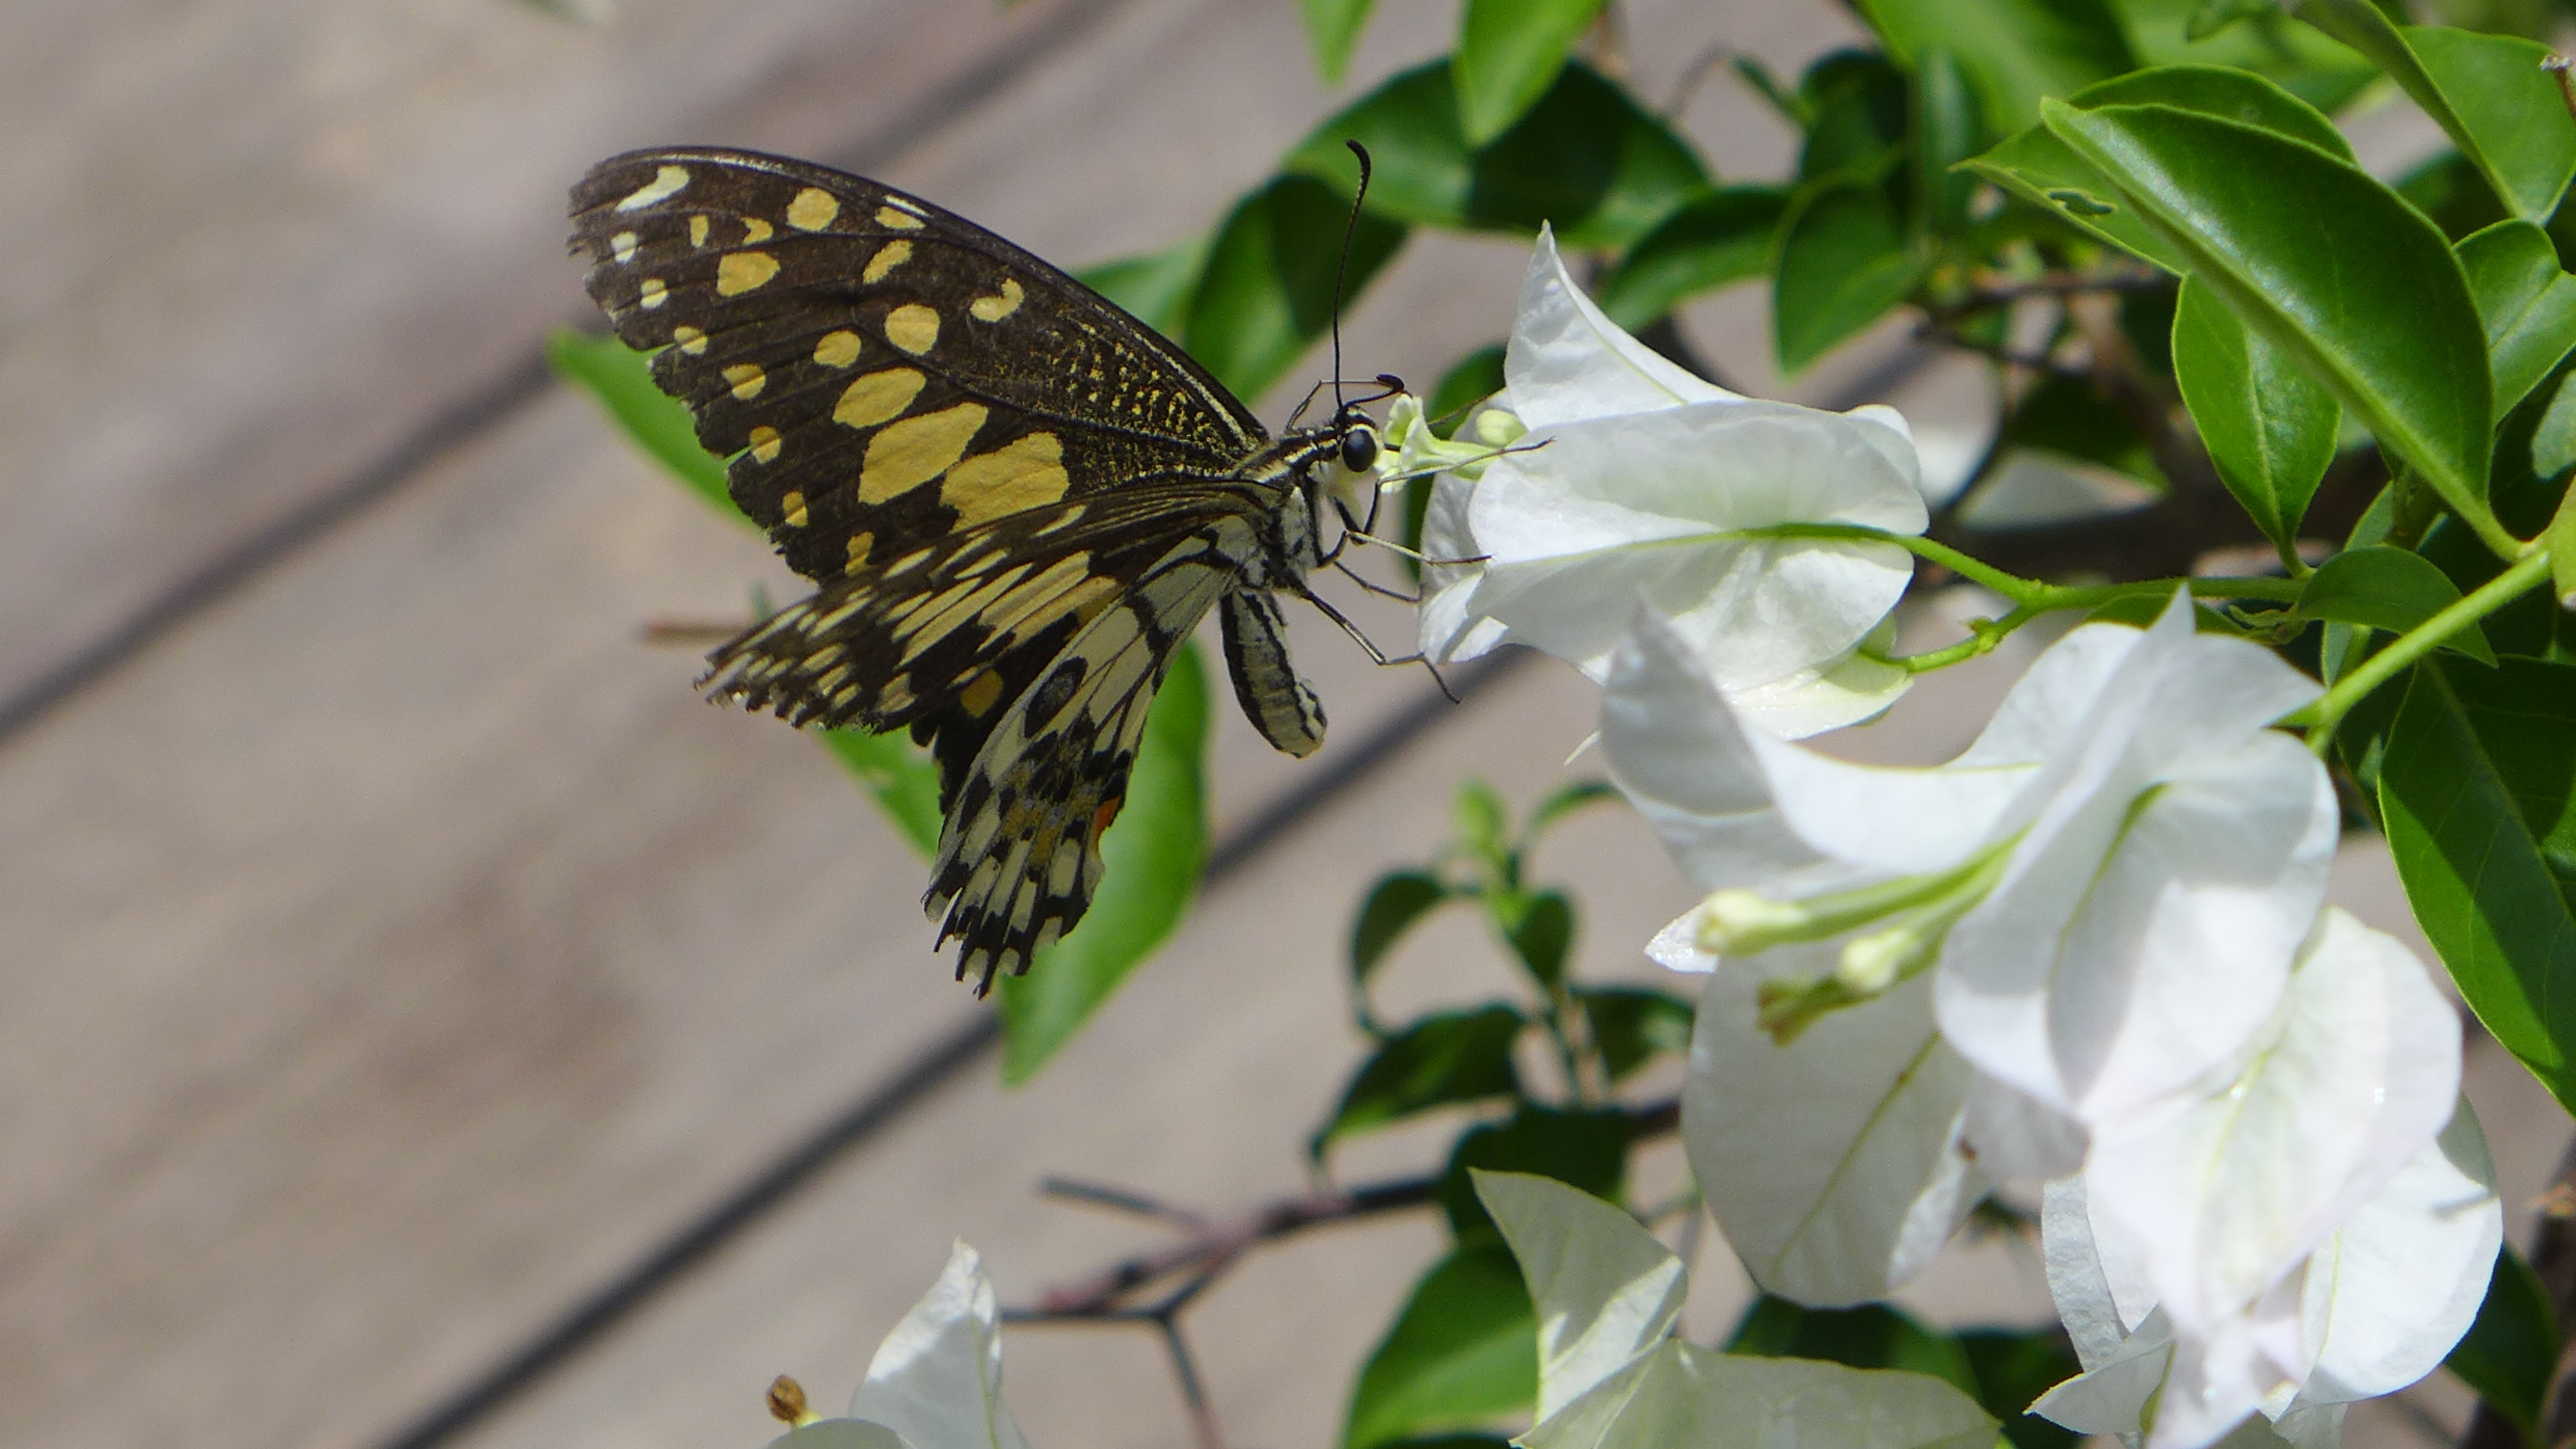 yellow and black spotted butterfly gets nectar from white flowers